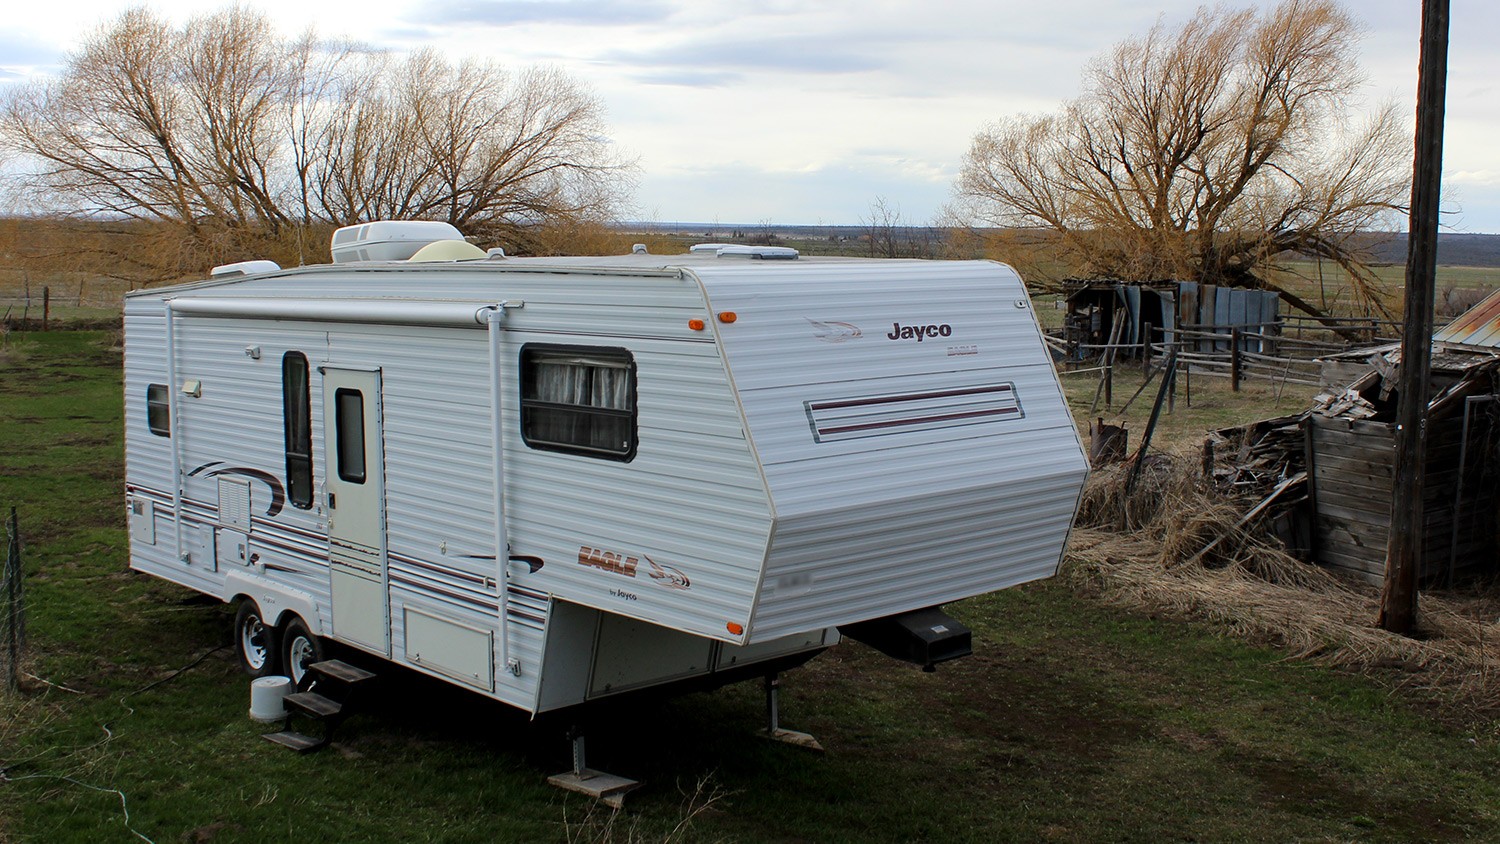 After getting married, Heather and Aaron lived in a camper van on her grandparent's property.